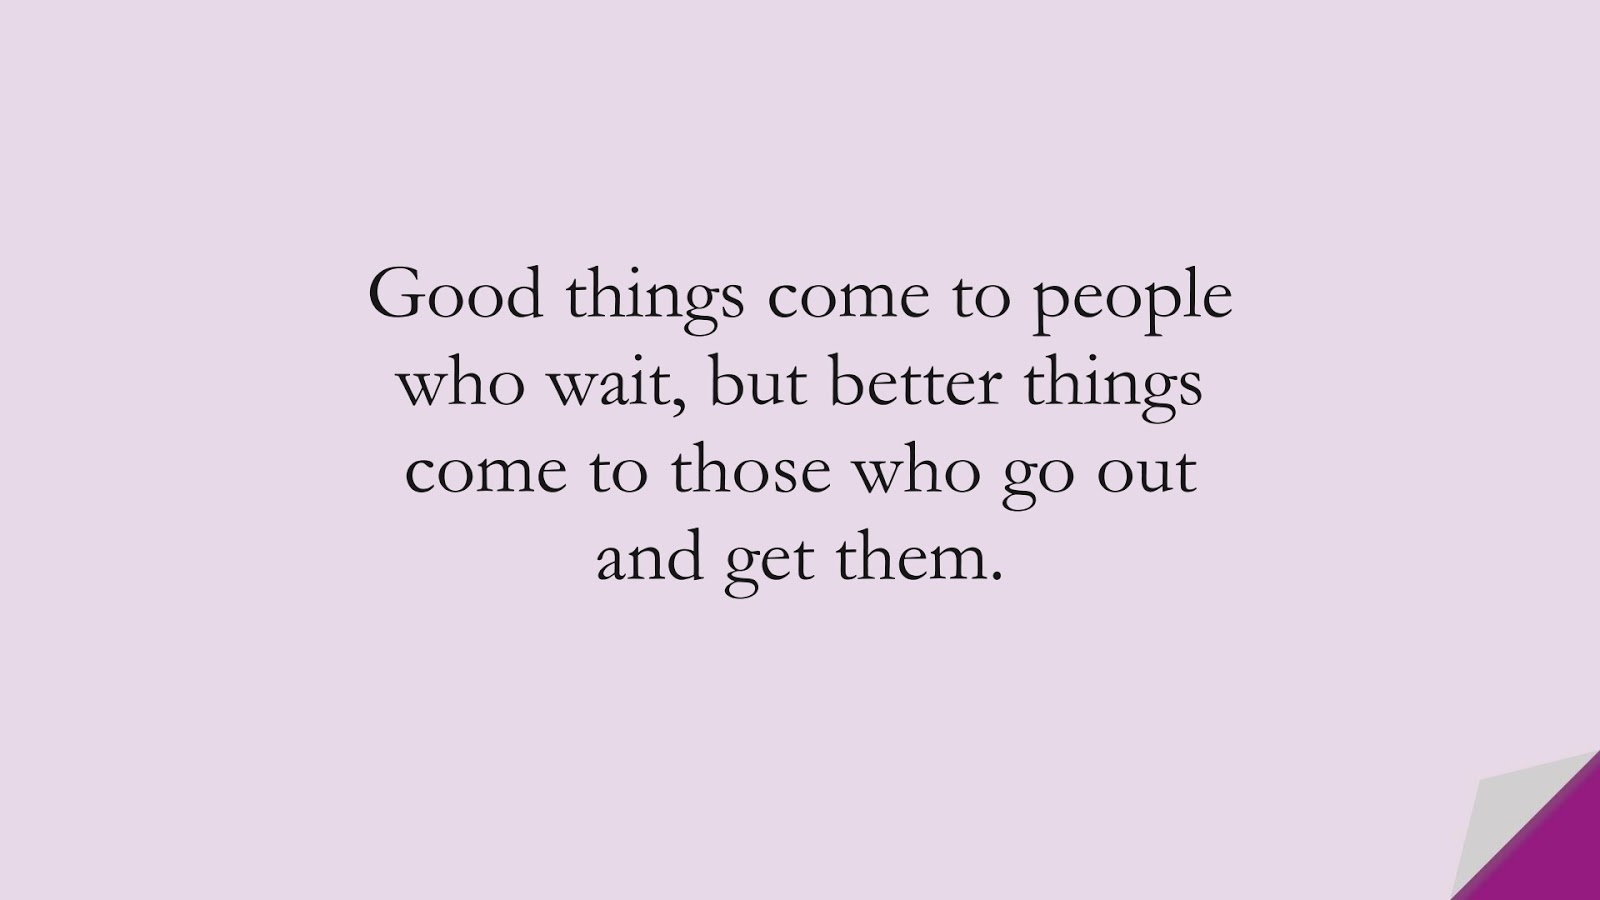 Good things come to people who wait, but better things come to those who go out and get them.FALSE